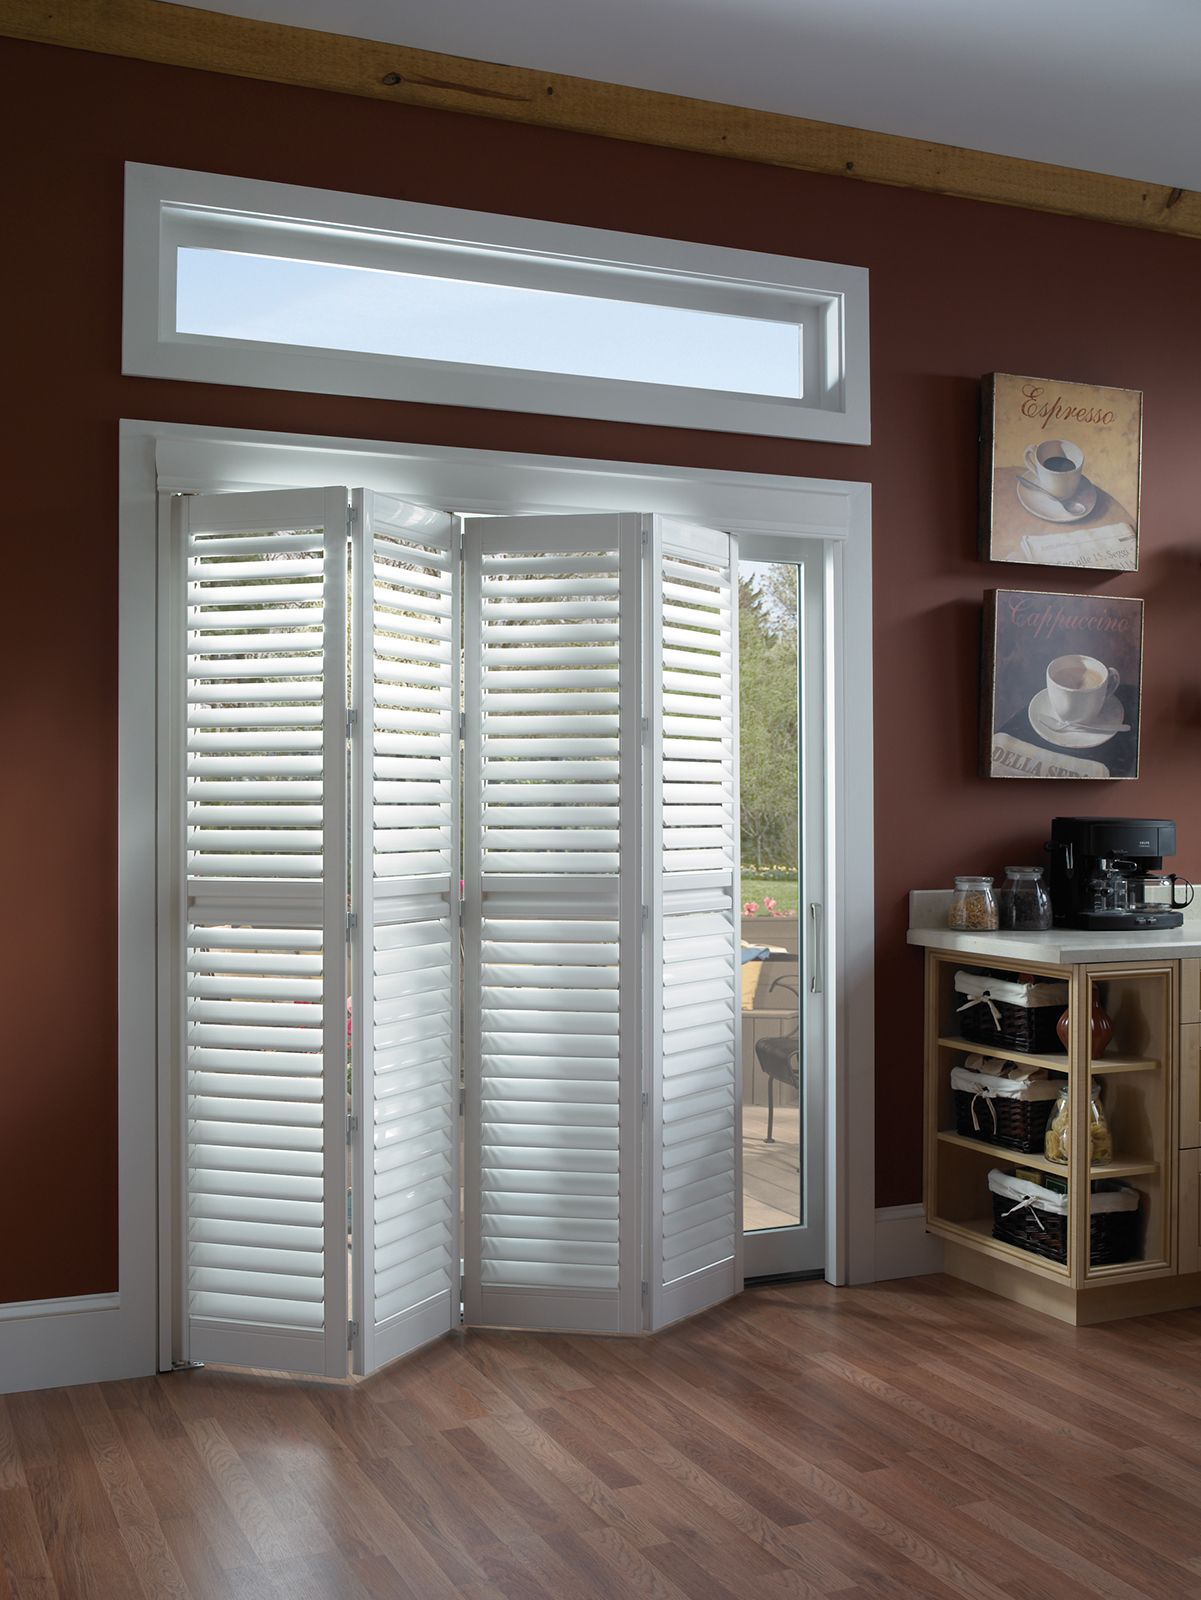 Cotton • Two panel Bi-Fold doors • 2½ inch louver • Deluxe Divider Rail • Decorative Valance • Clearview® hidden rear tilt